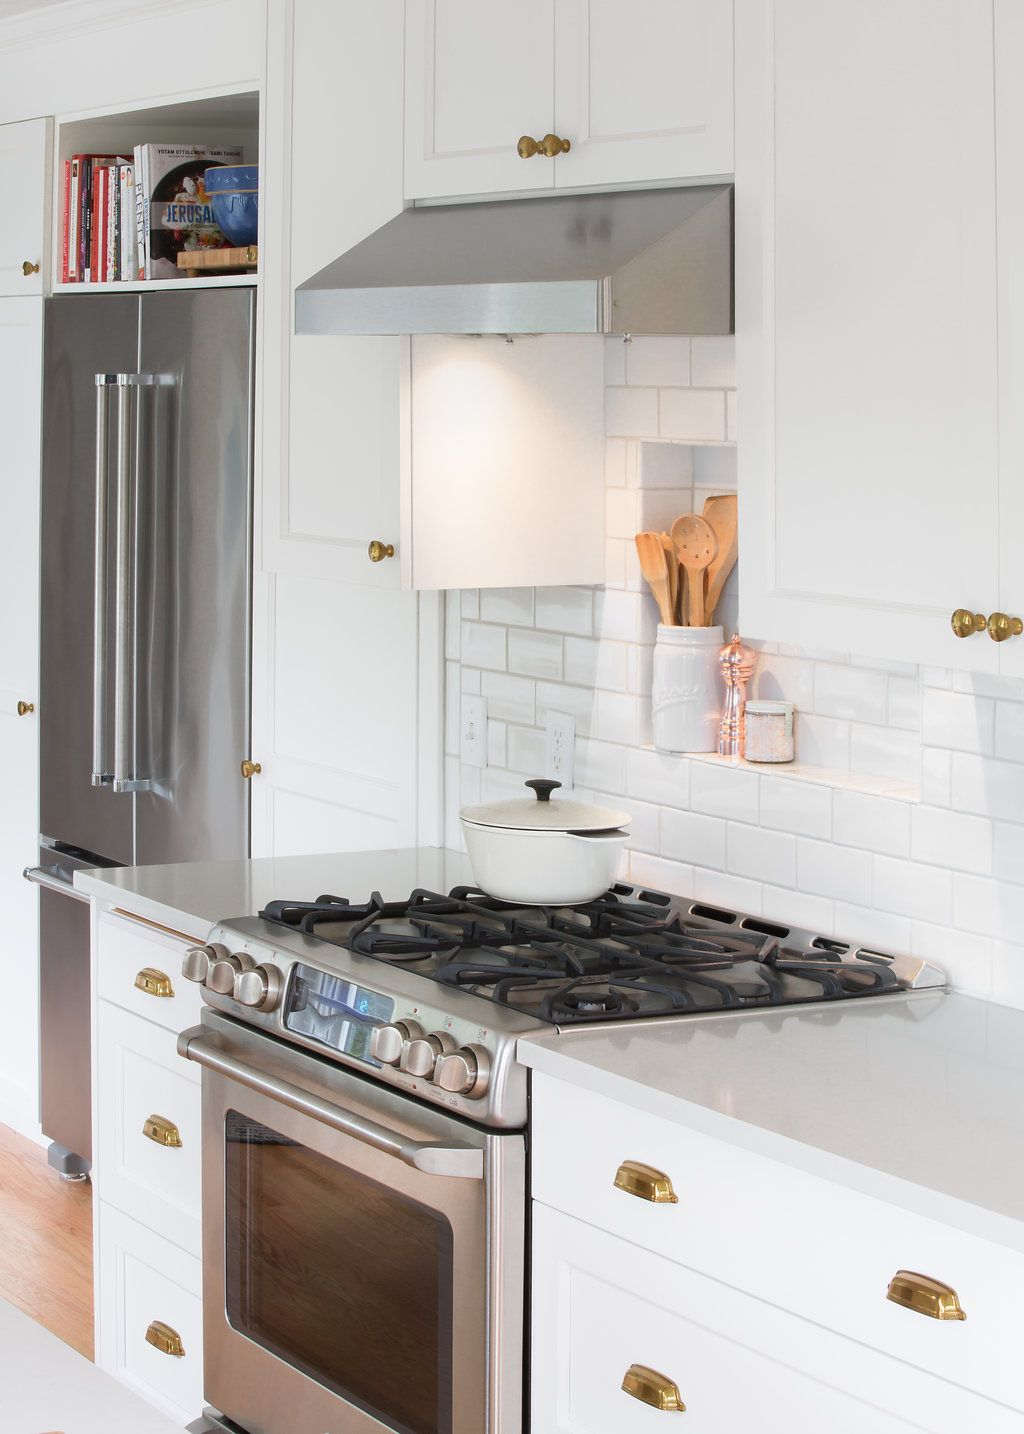 Cute Tile Shelf Behind The Range In A Traditional All White Kitchen With Quartz Countertops And B Magnolia Kitchen White Ikea Kitchen Black Kitchen Countertops